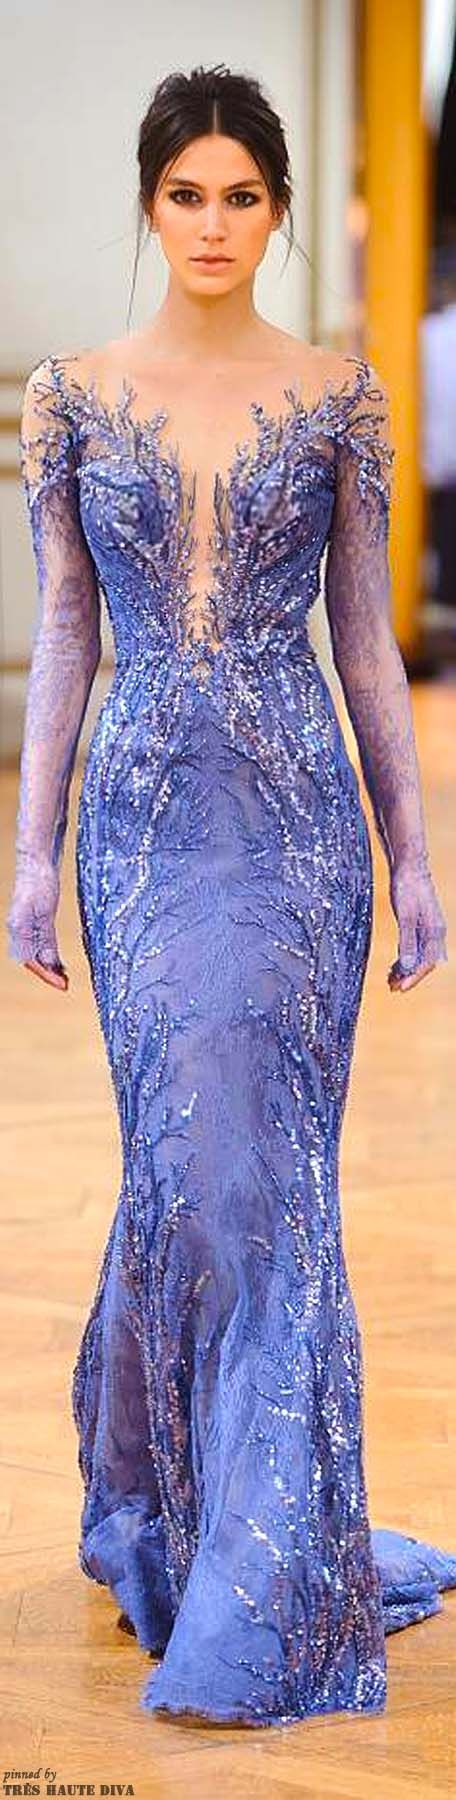 Zuhair Murad Haute Couture Autumn/Winter 2013 Oh wow!